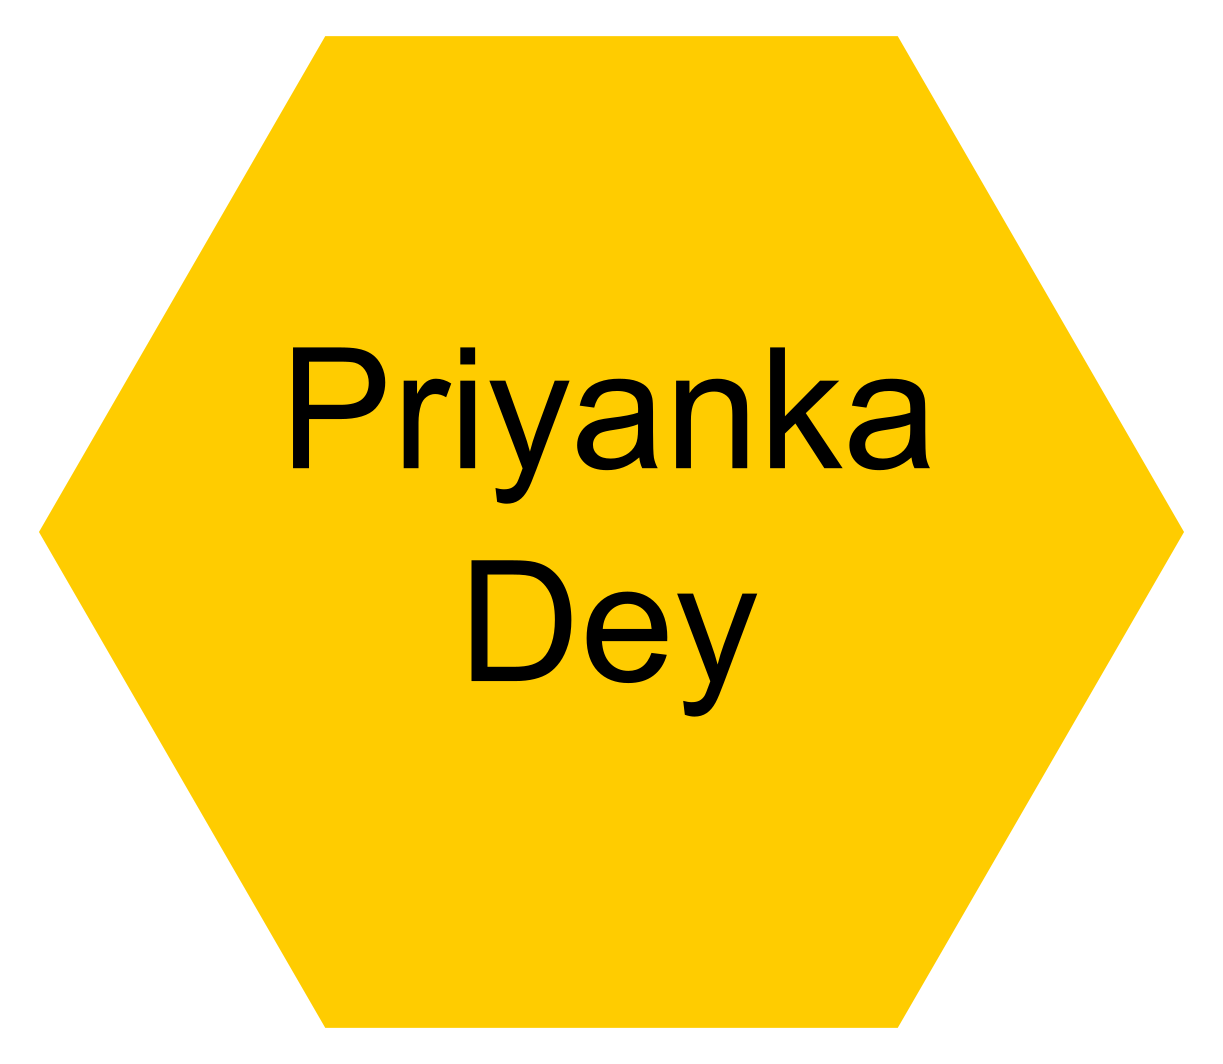 Dr. Priyanka Dey (University of Exeter: Post-Doctoral Researcher) - Click this icon to reveal their contact details.